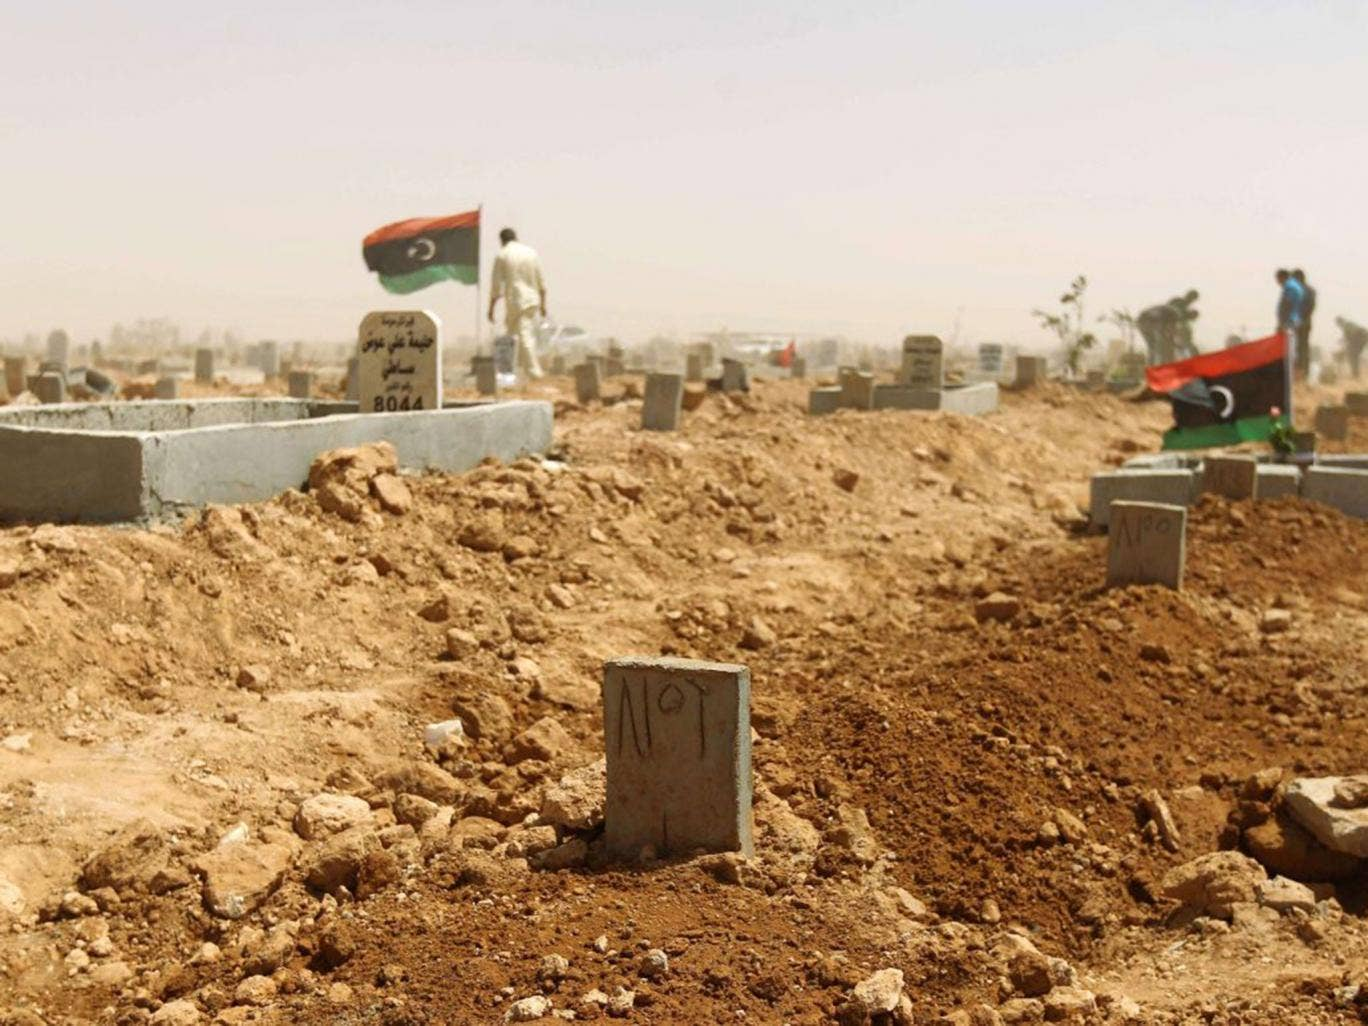 The grave of Libyan human rights activist and lawyer Salwa Bugaighis outside Benghazi